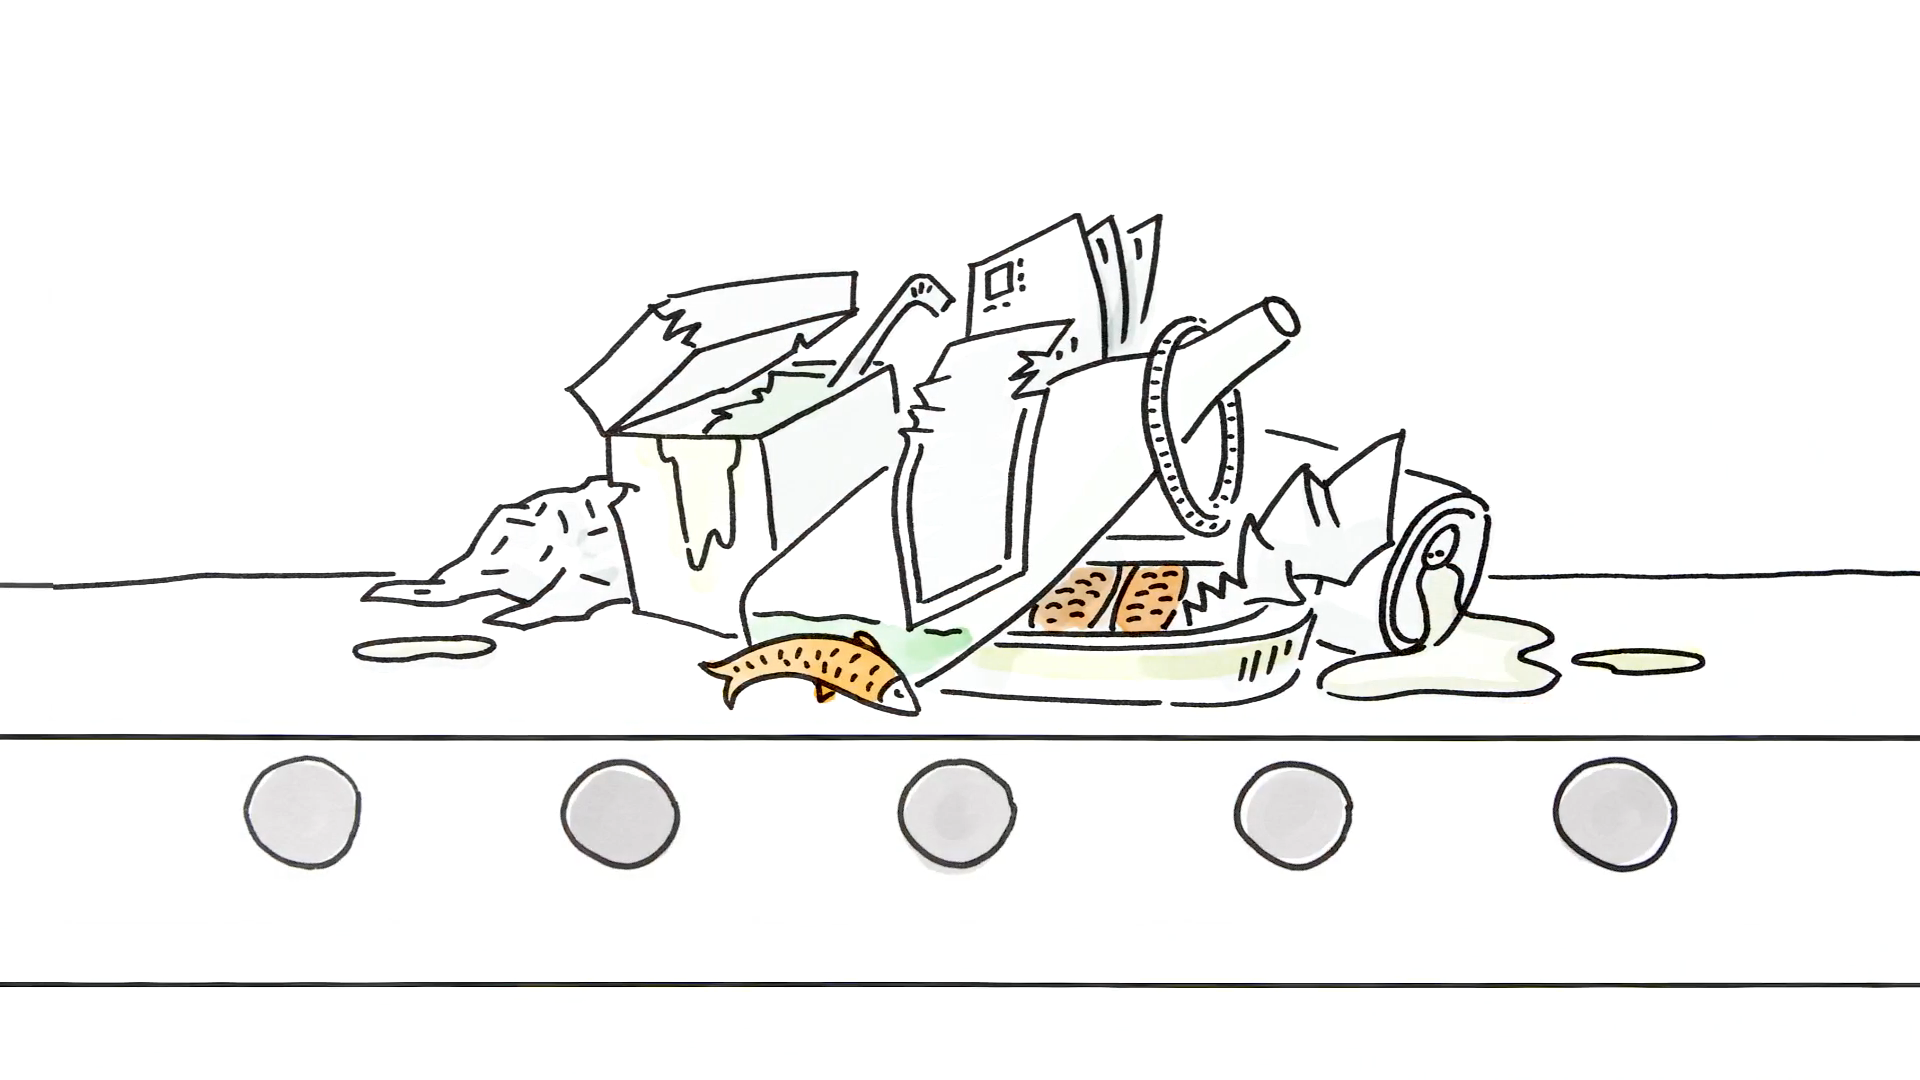 Once your recycling is mixed it becomes contaminated and very expensive and difficult to seperate and purify.